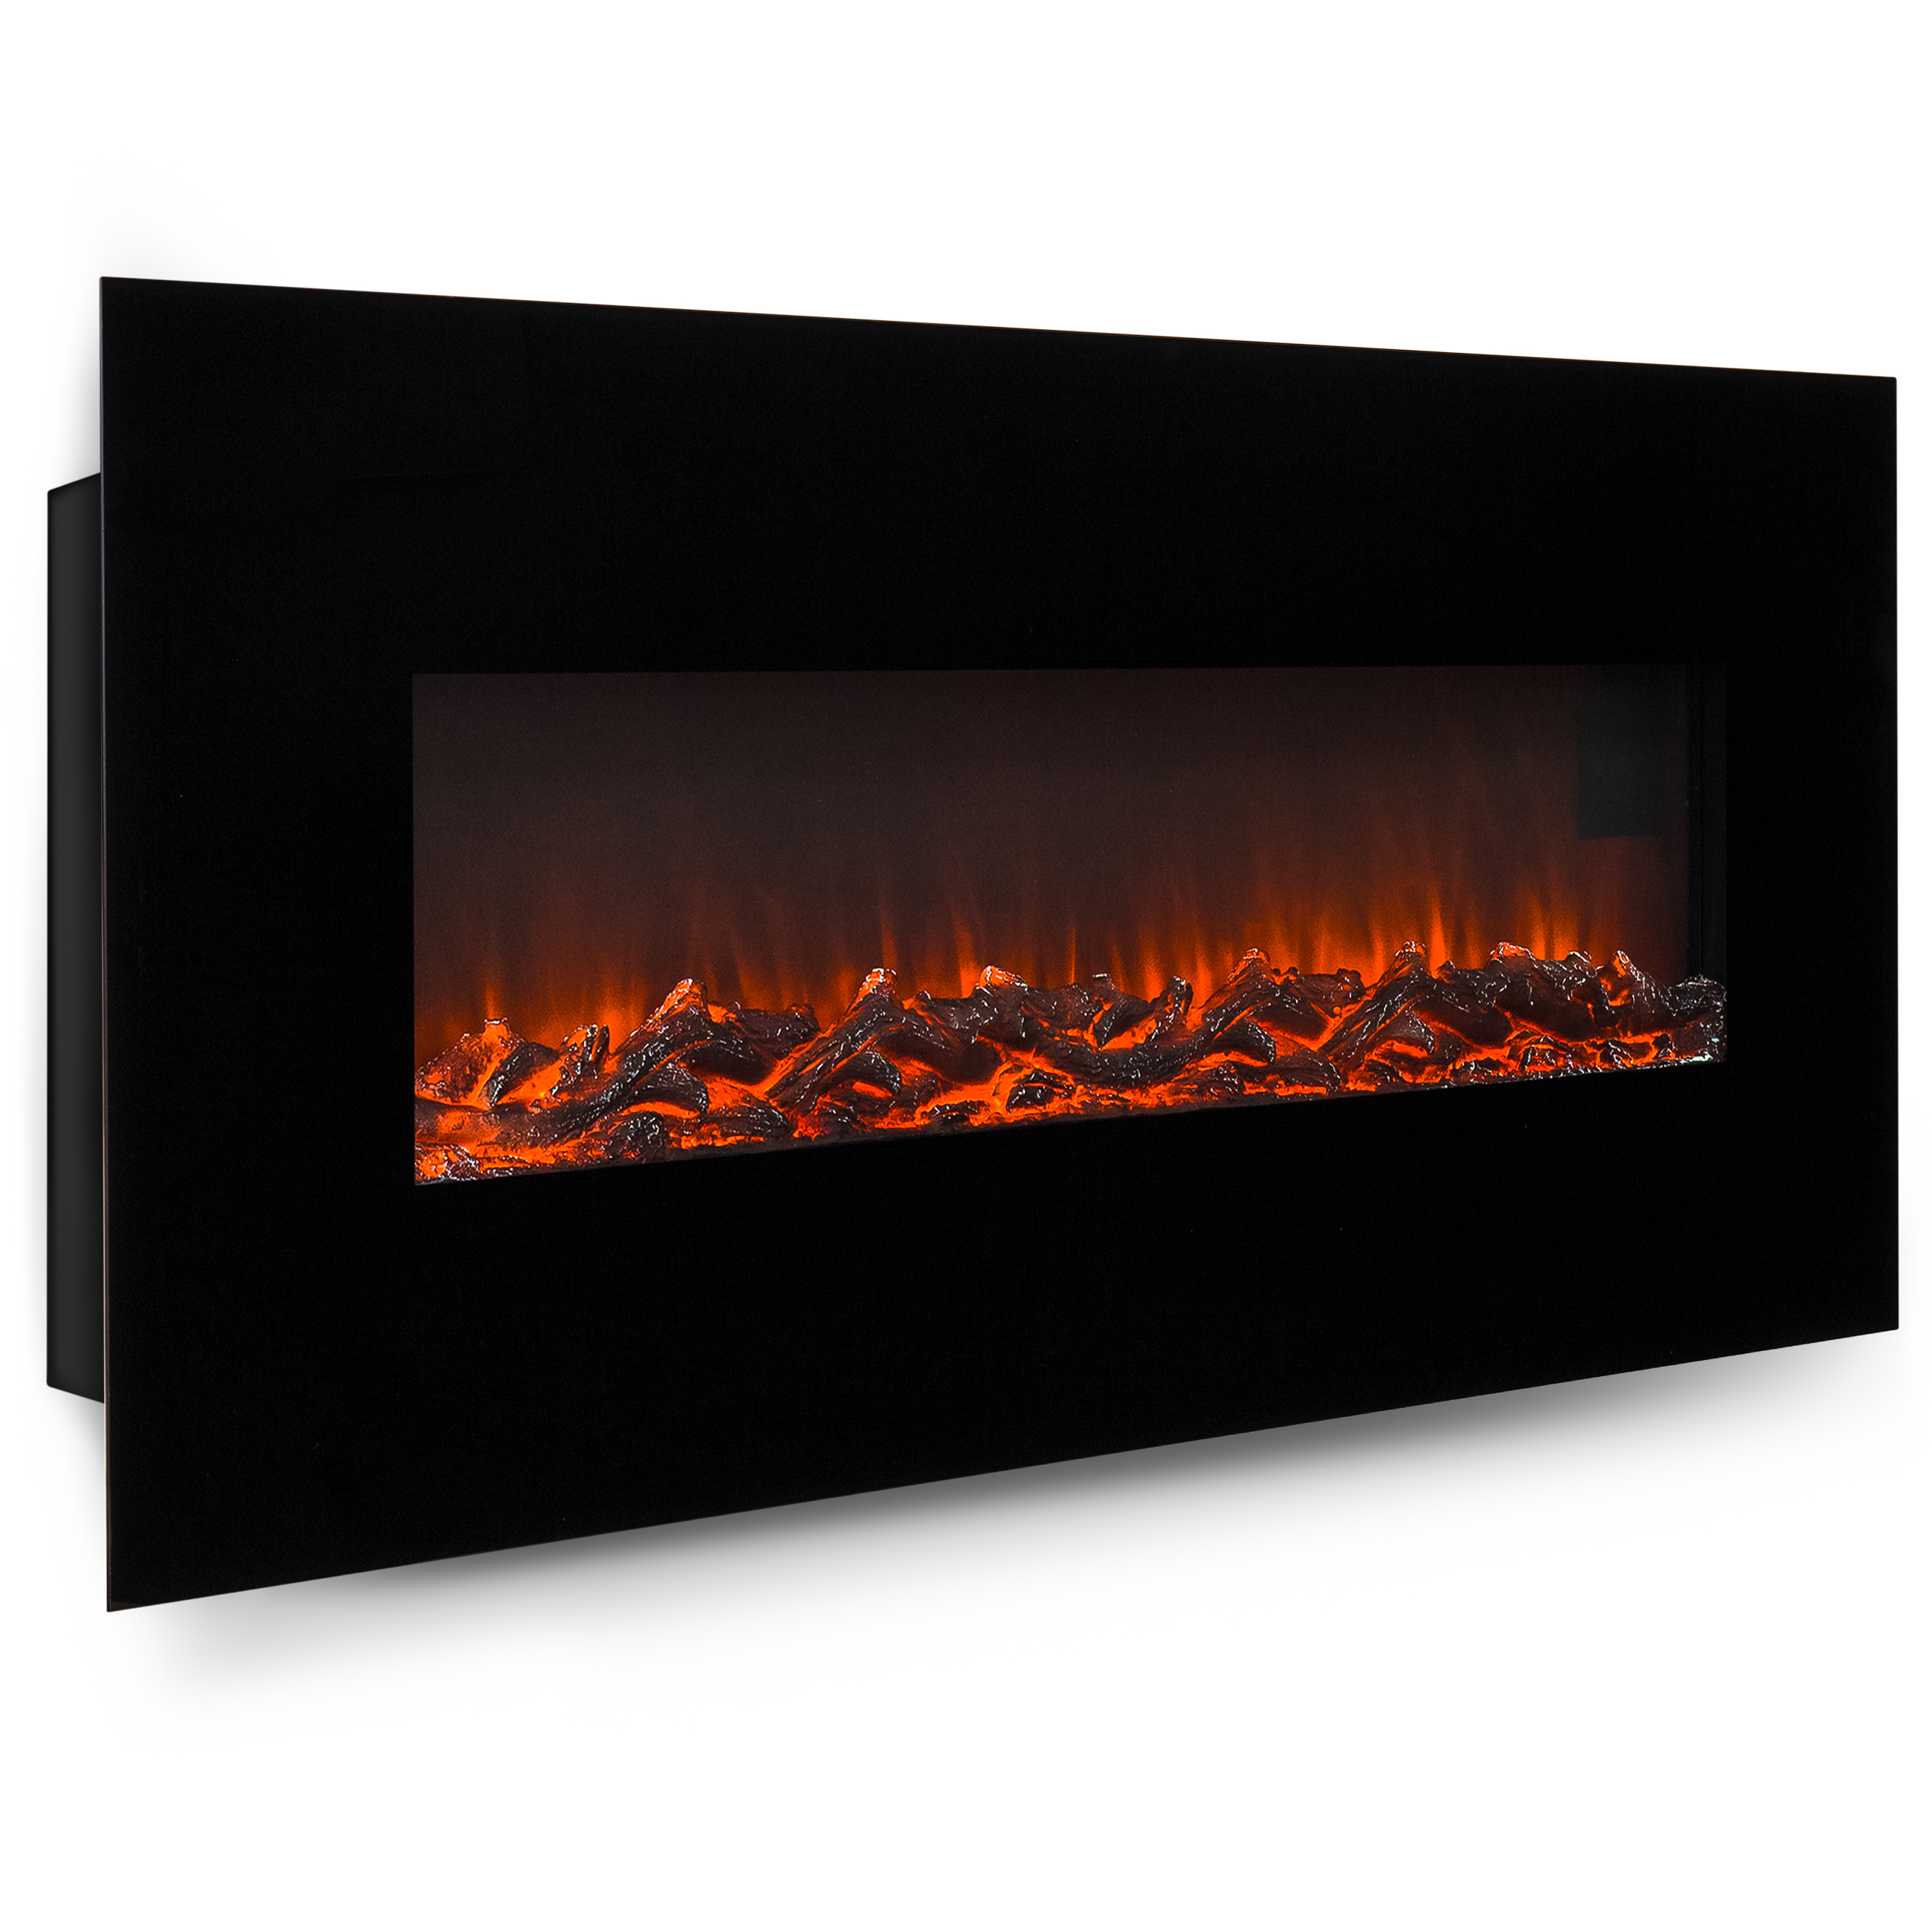 Walmart Black Electric Fireplace Best Choice Products 50in Indoor Electric Wall Mounted Fireplace Heater W Adjustable Heating Metal Glass Frame Controller Black